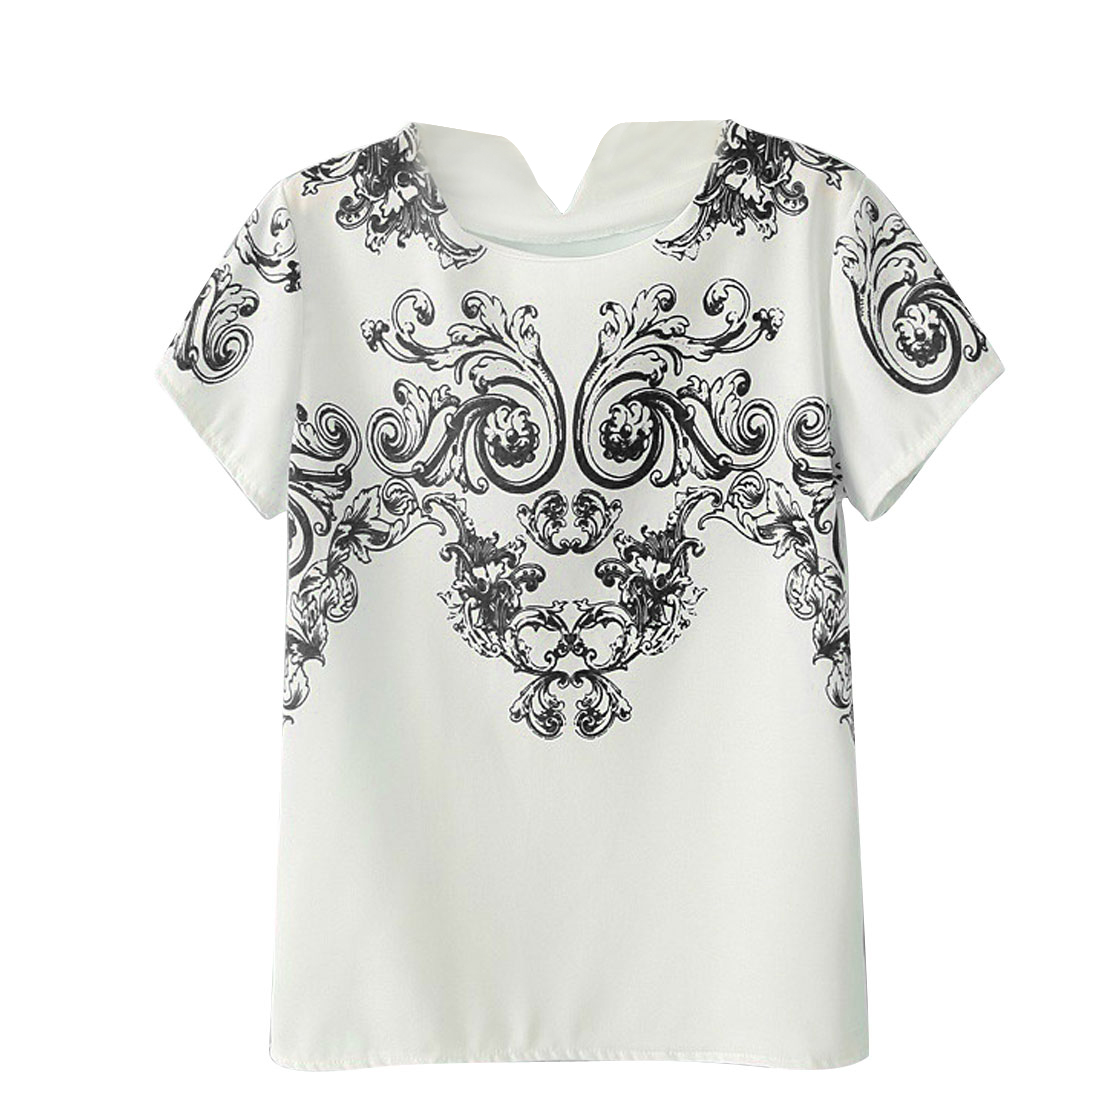 Women Round Neck Short Sleeves Floral Prints Casual Shirt Black S